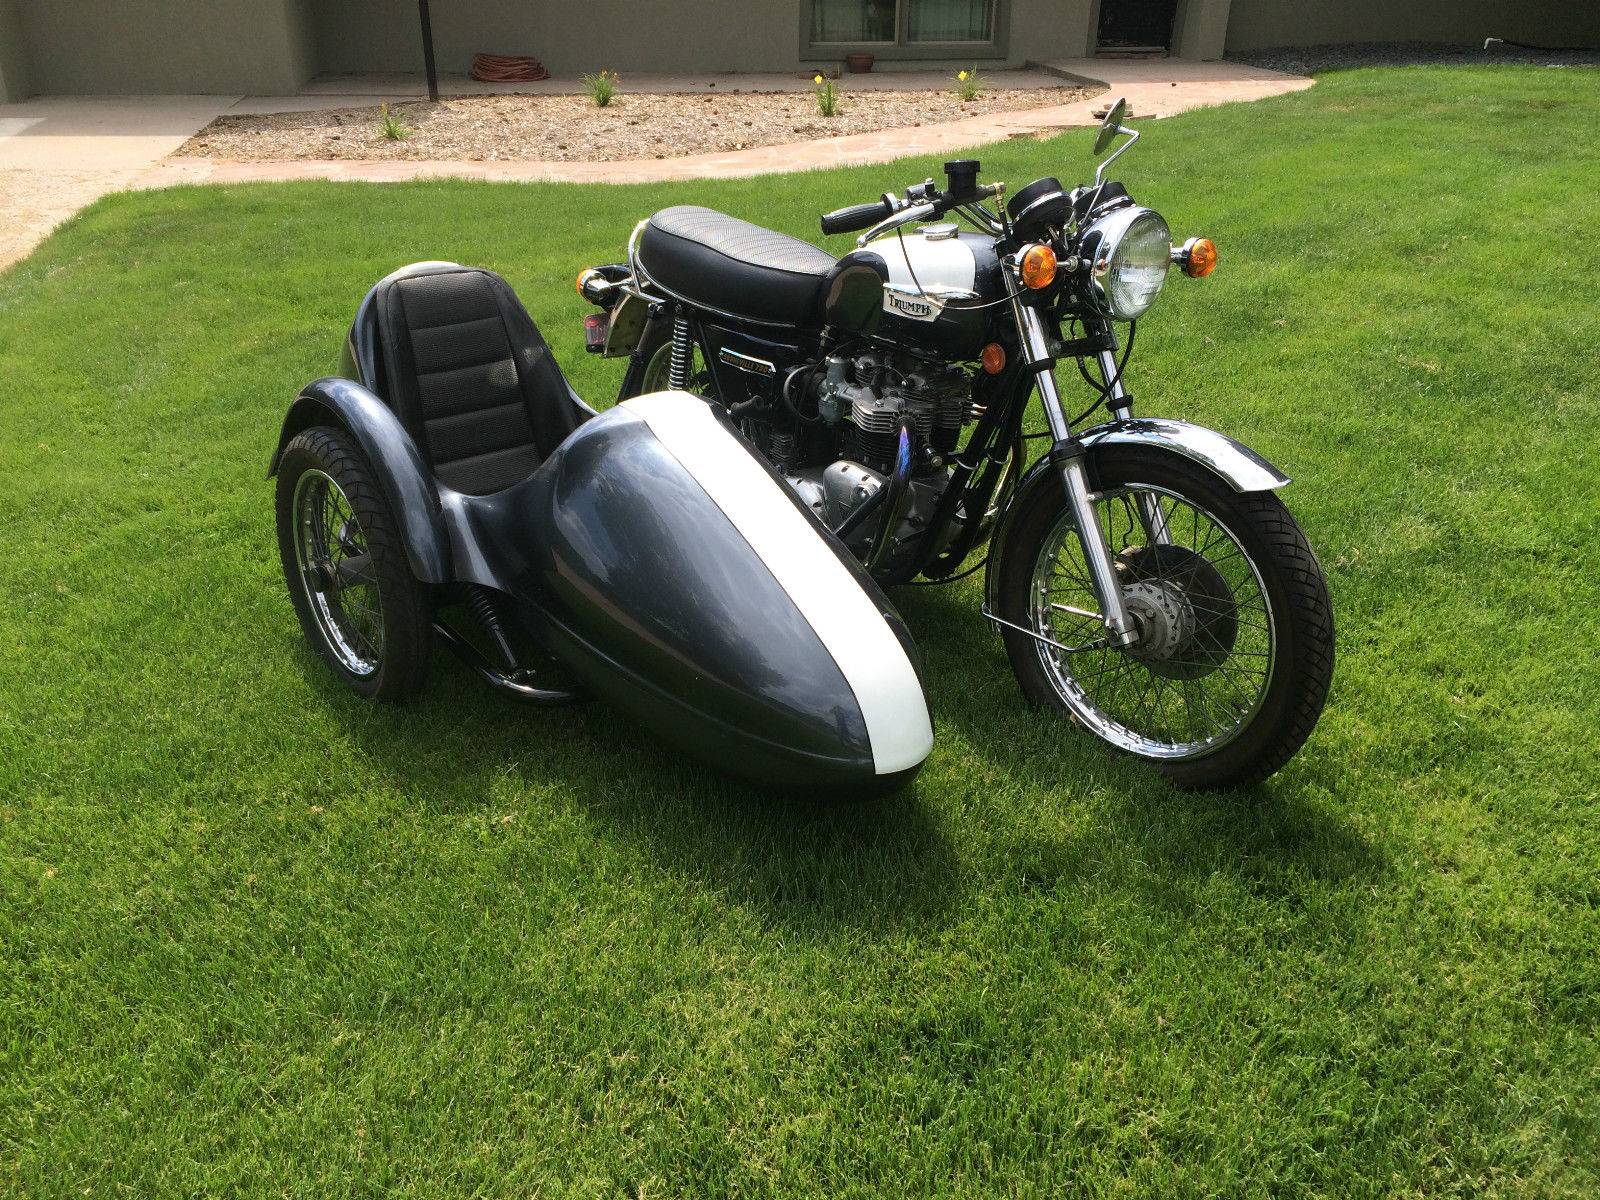 Triumph Bonneville with Sidecar - 1977